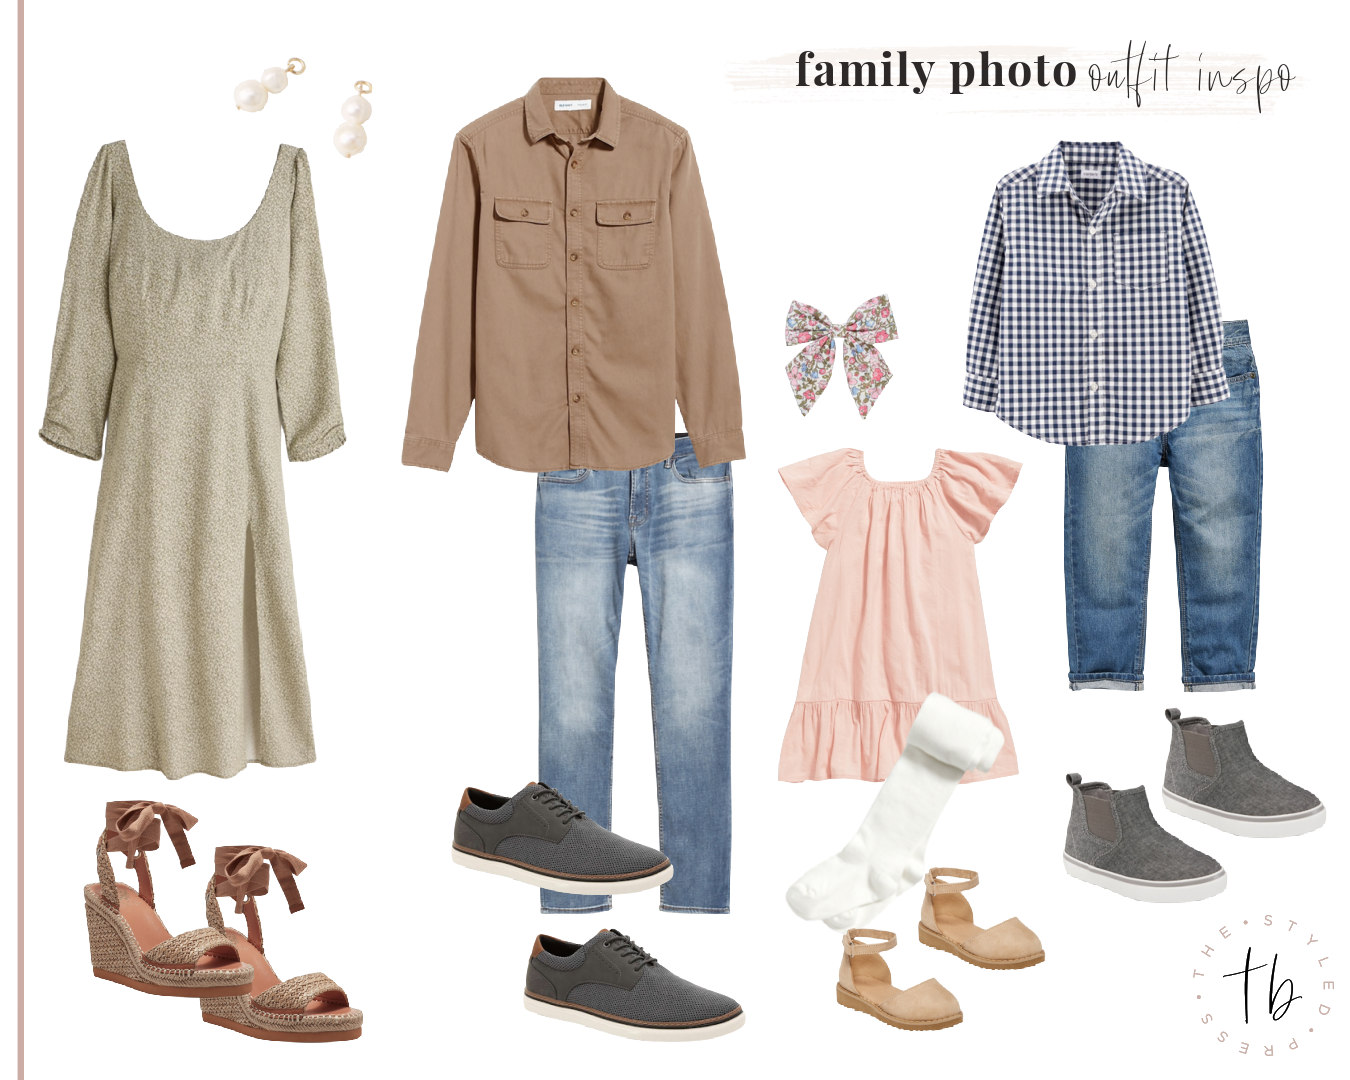 spring family photo outfit ideas, spring outfits 2021, family photo outfit inspo, family photos outfit inspiration